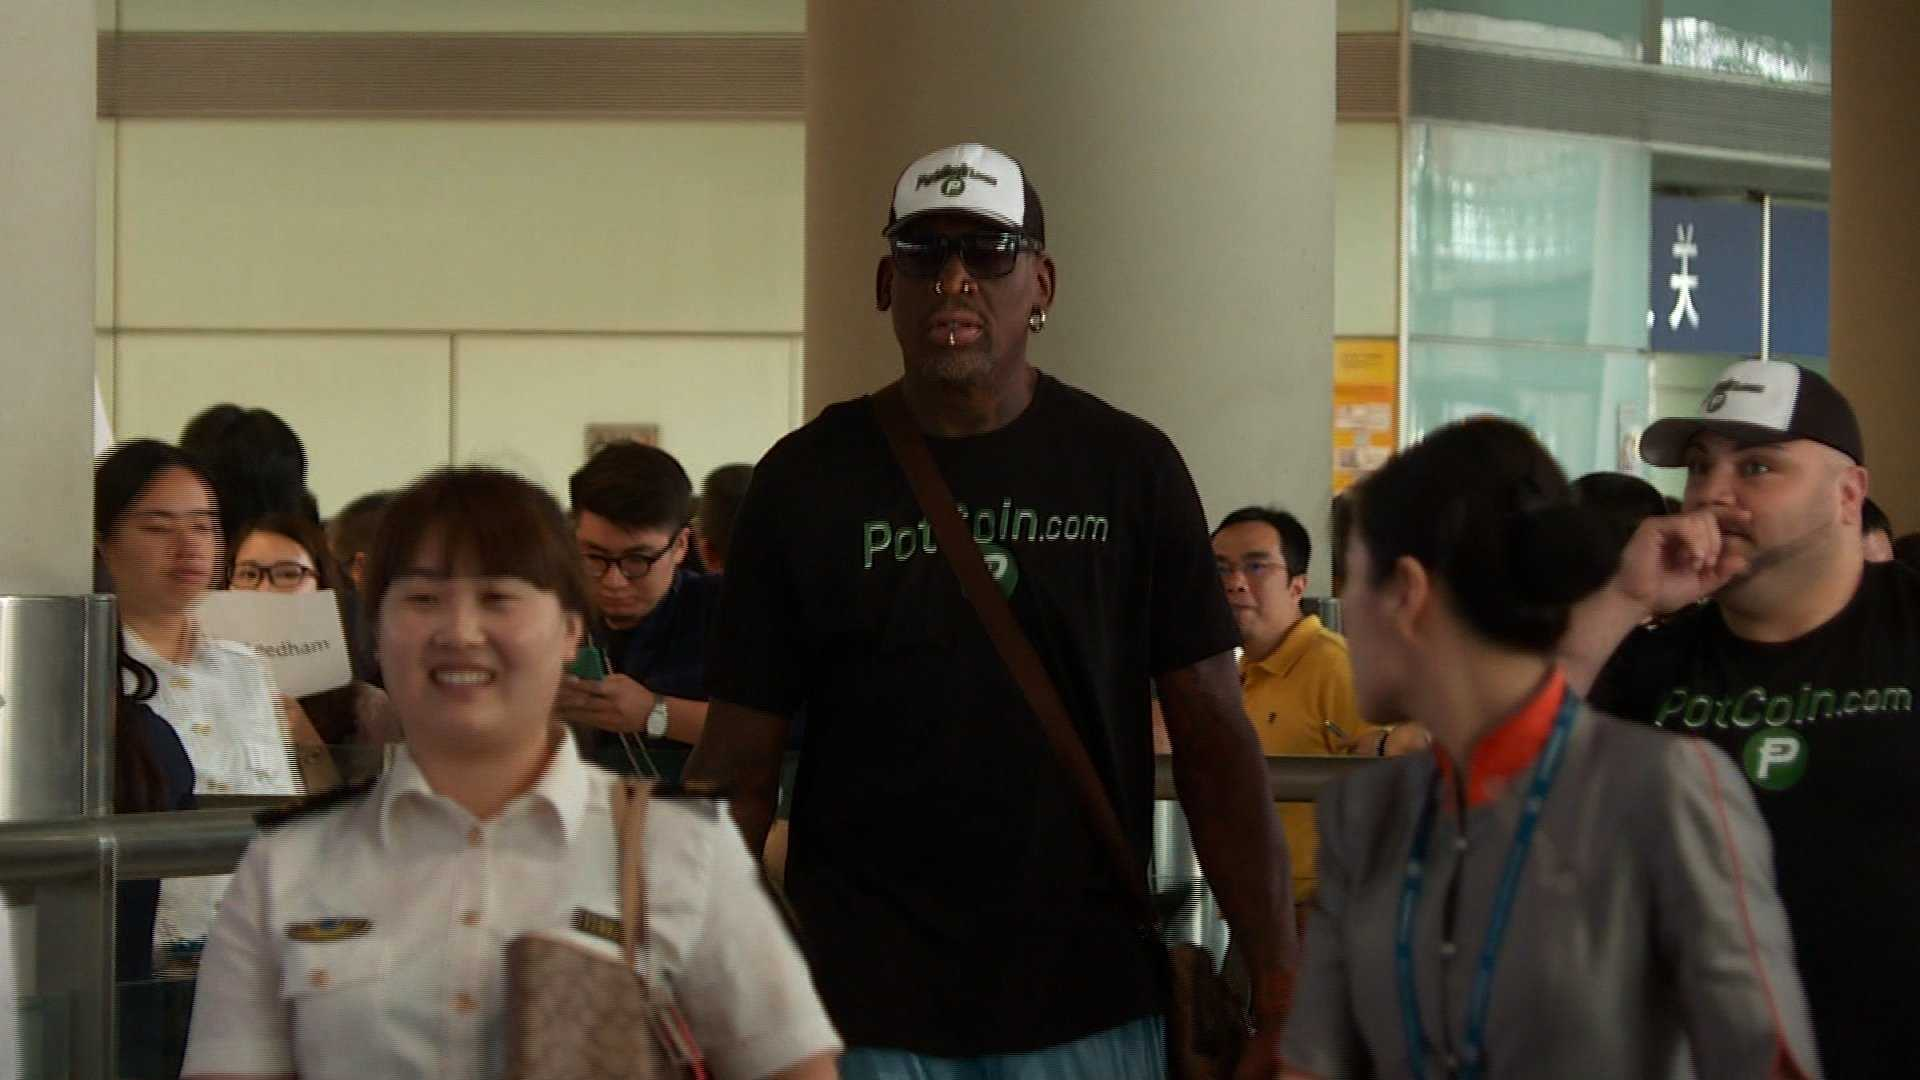 Former NBA star Rodman traveling to North Korea amid tensions with US